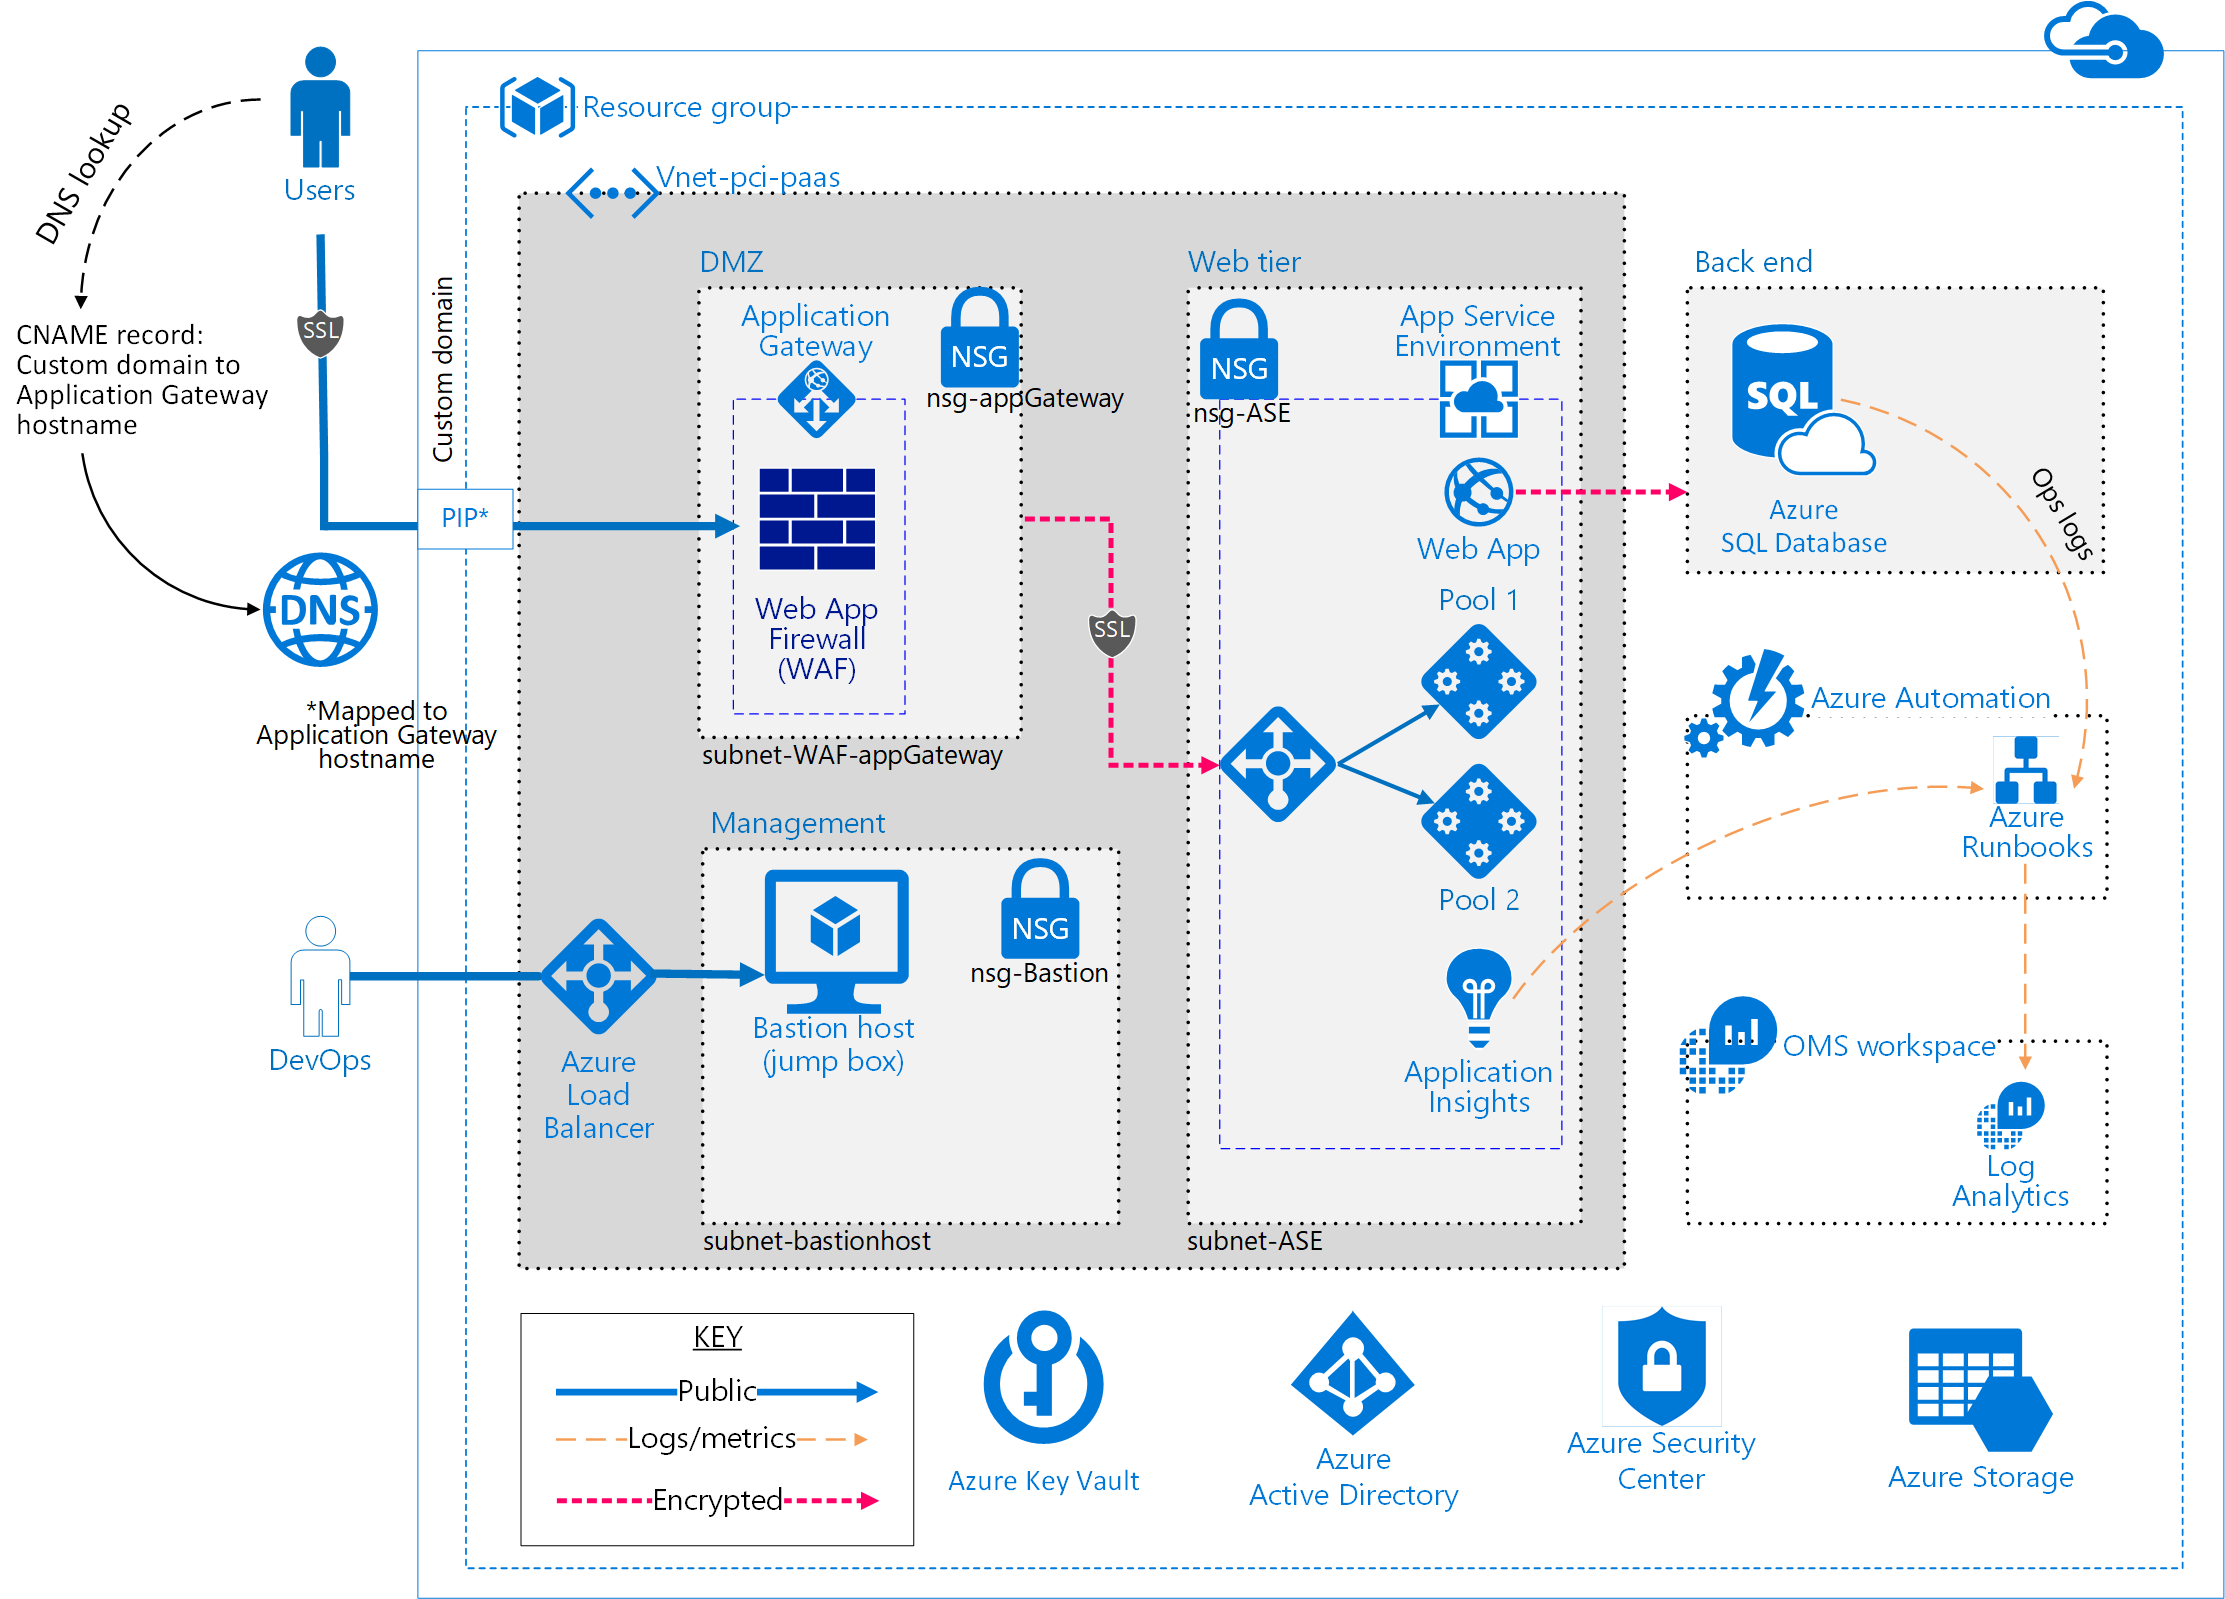 Azure security and compliance blueprint ffiec financial services architectural diagram malvernweather